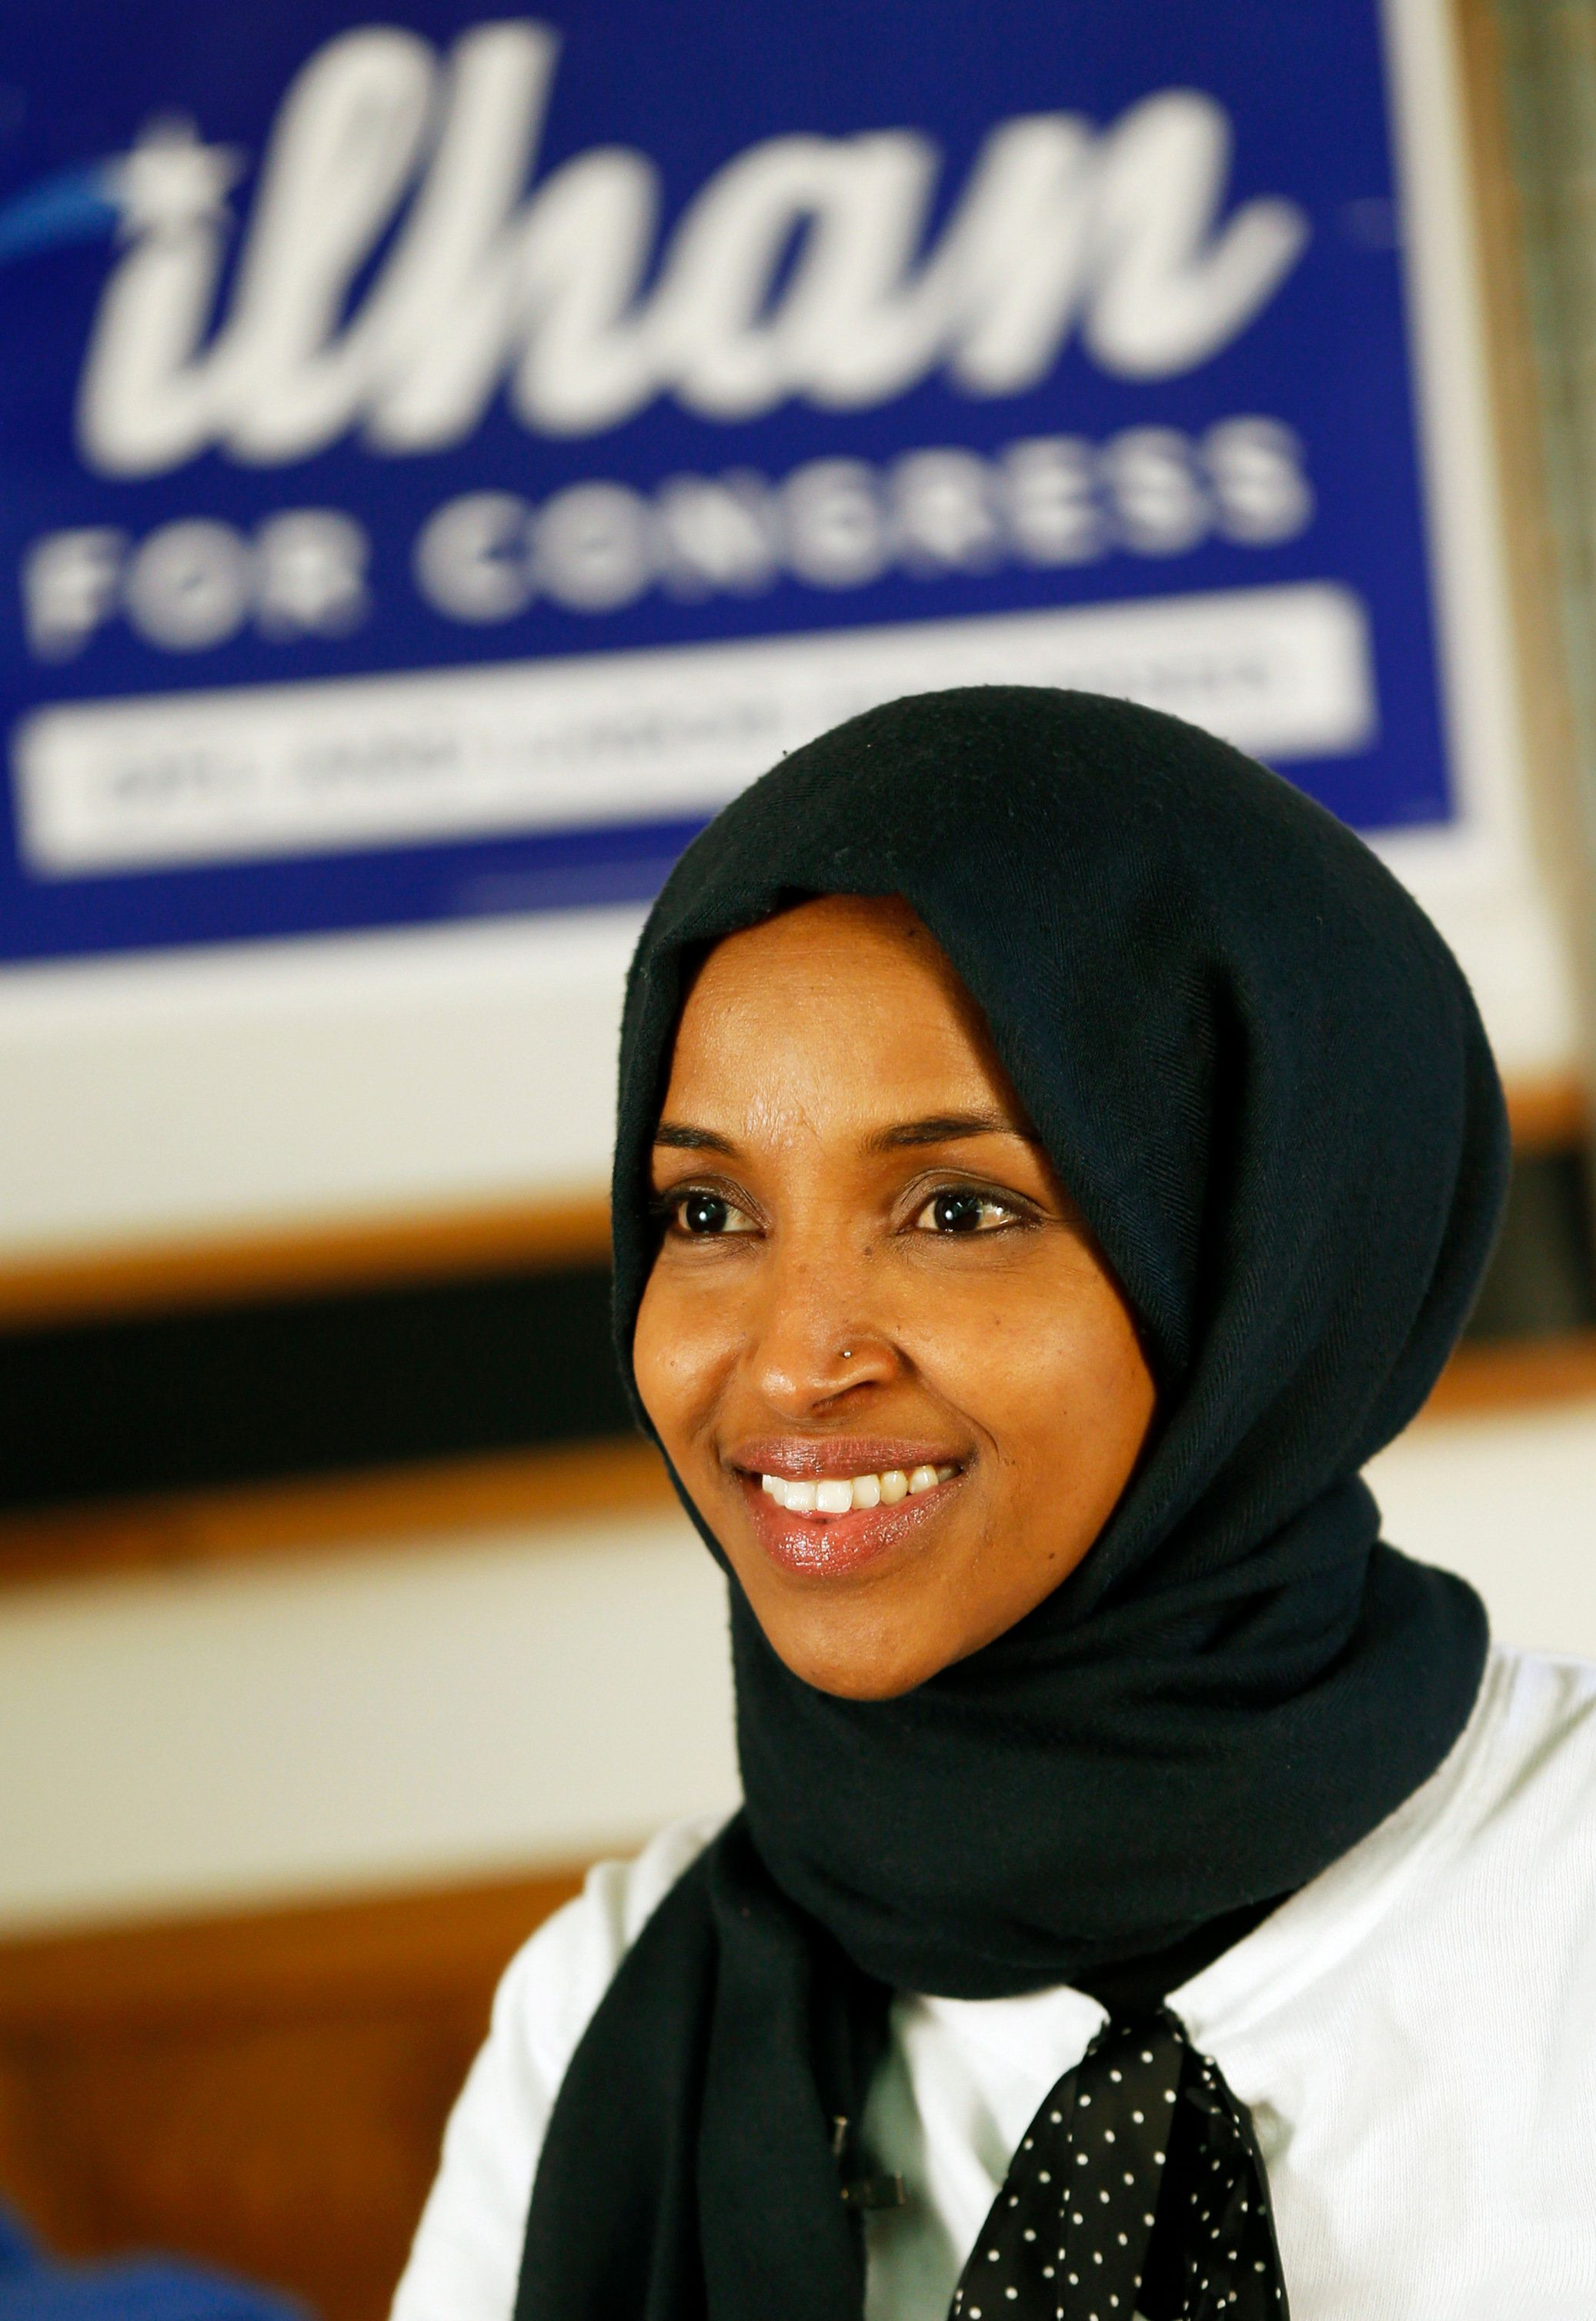 ilhan omar tweets about young students asking her to